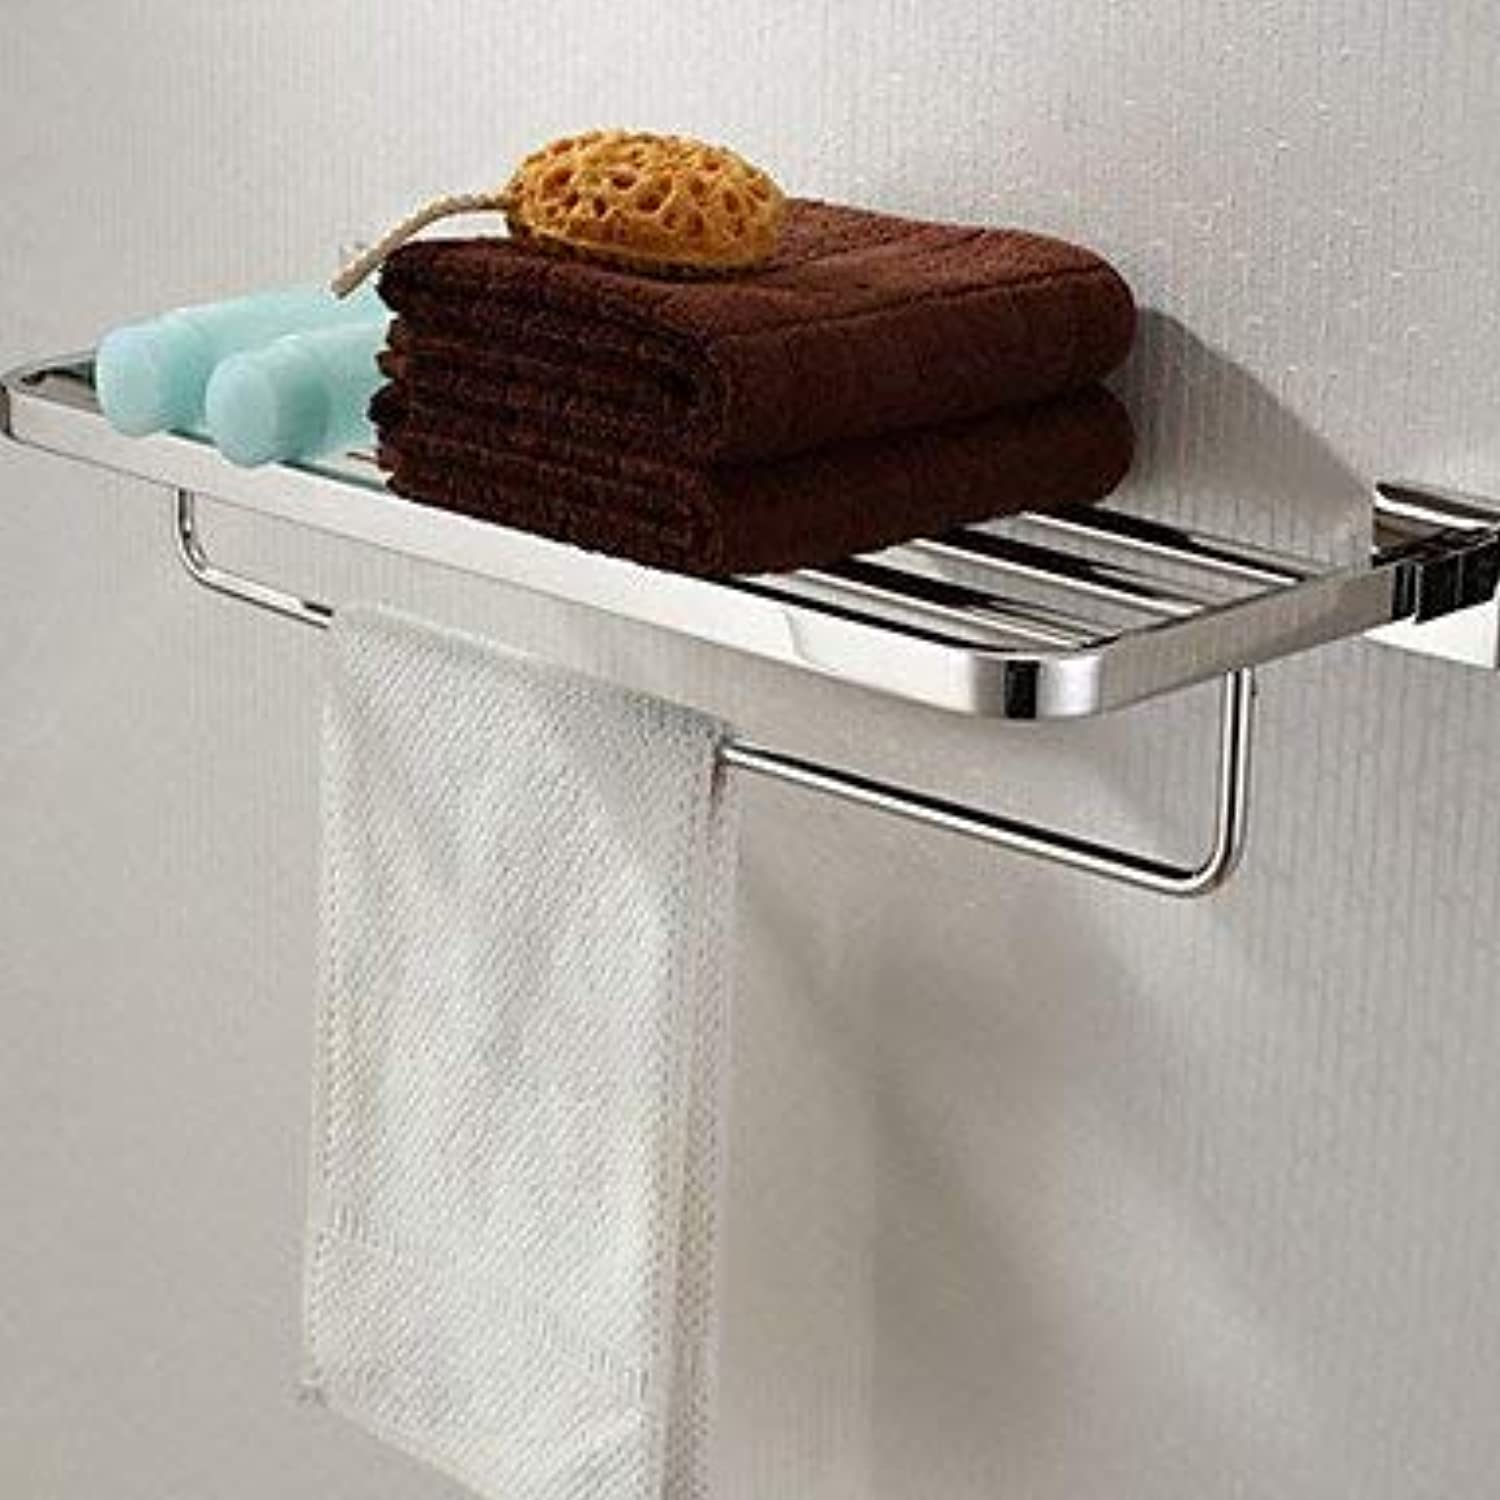 Wghz Bathroom Shelves@Bathroom Shelf Stainless Steel Wall Mounted 600x 220 x 120mm (23.6 x 8.66 x 4.72 Stainless Steel Contemporary